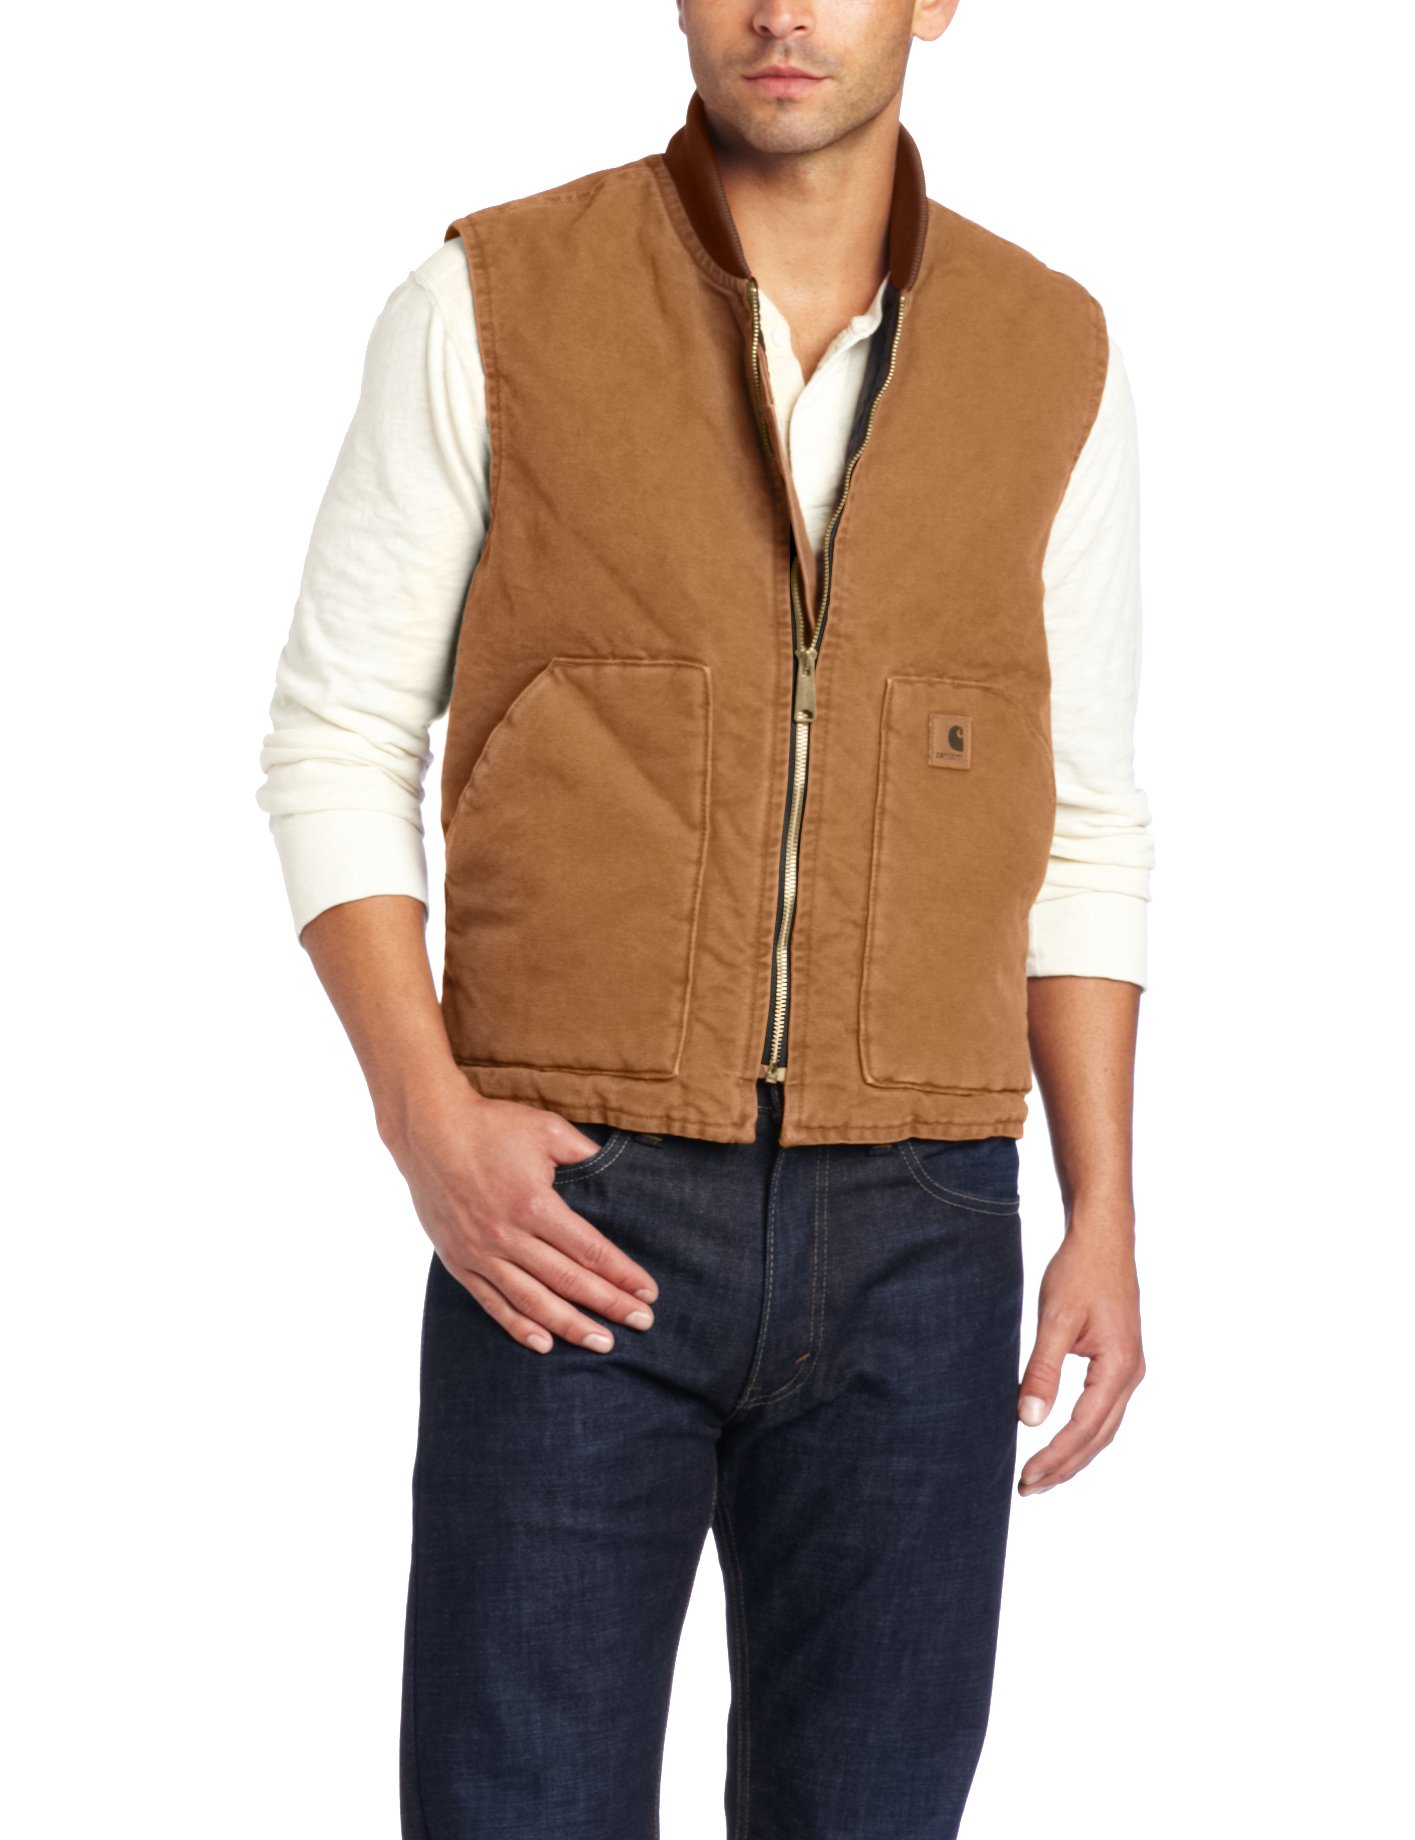 Carhartt Men's Sandstone Vest Arctic Quilt Lined, Brown,X-Large by Carhartt